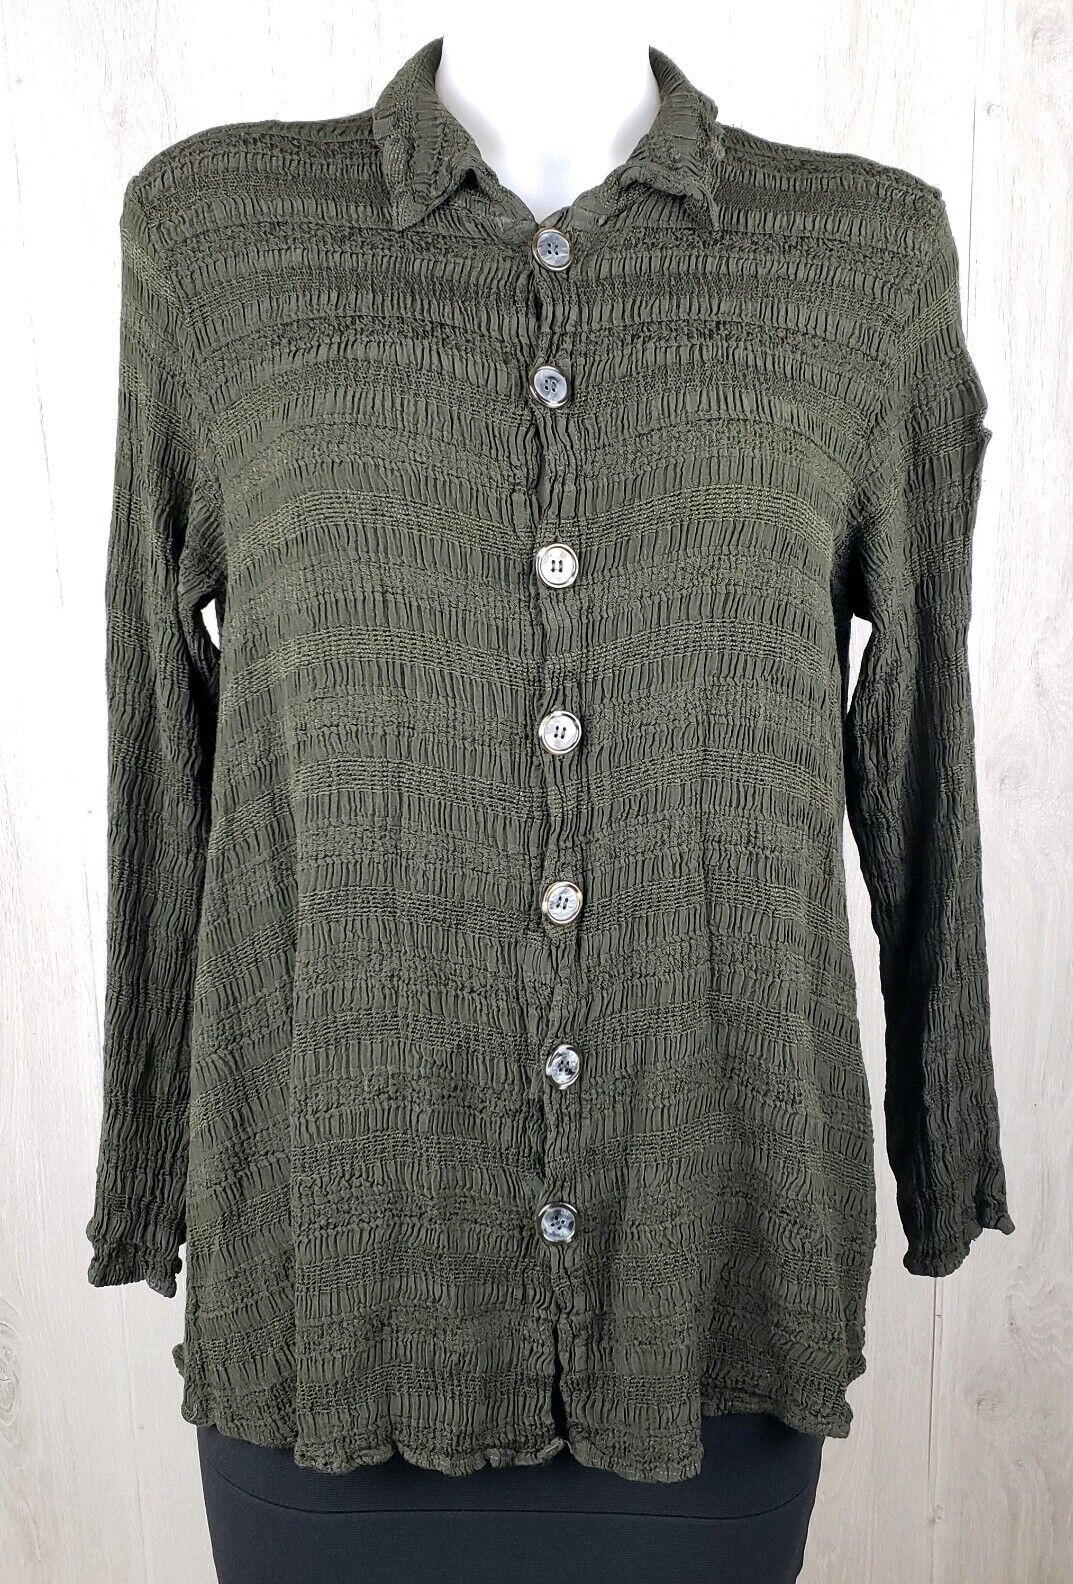 CP Shades Size S Button Down Lagenlook Green Top Stretch